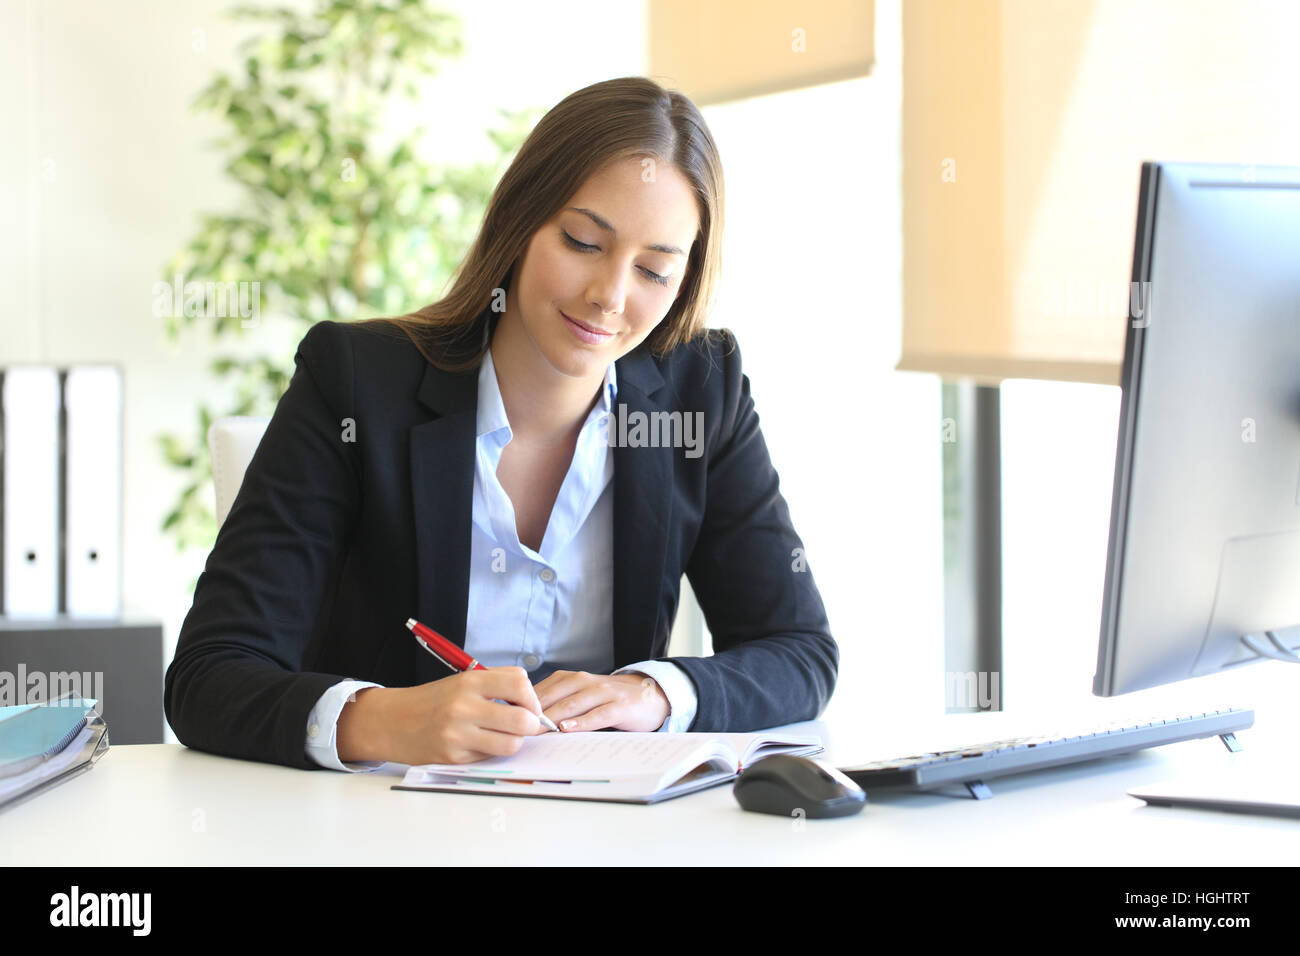 Busy businesswoman writing in an agenda on a desktop at office - Stock Image